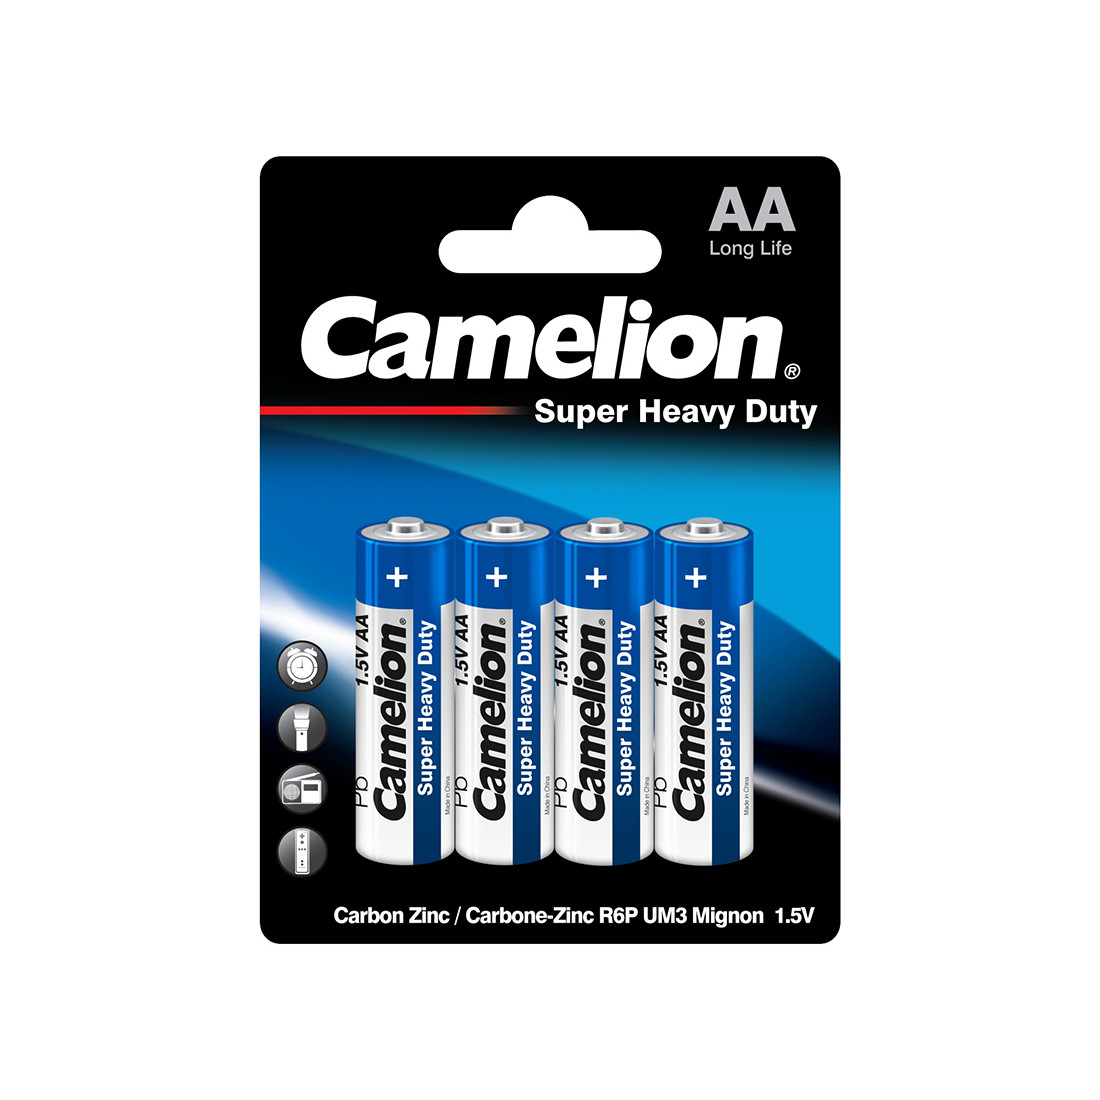 Батарейка, CAMELION, R6P-BP4B, Super Heavy Duty, AA, 1.5V, 1050mAh, 4 шт., Блистер